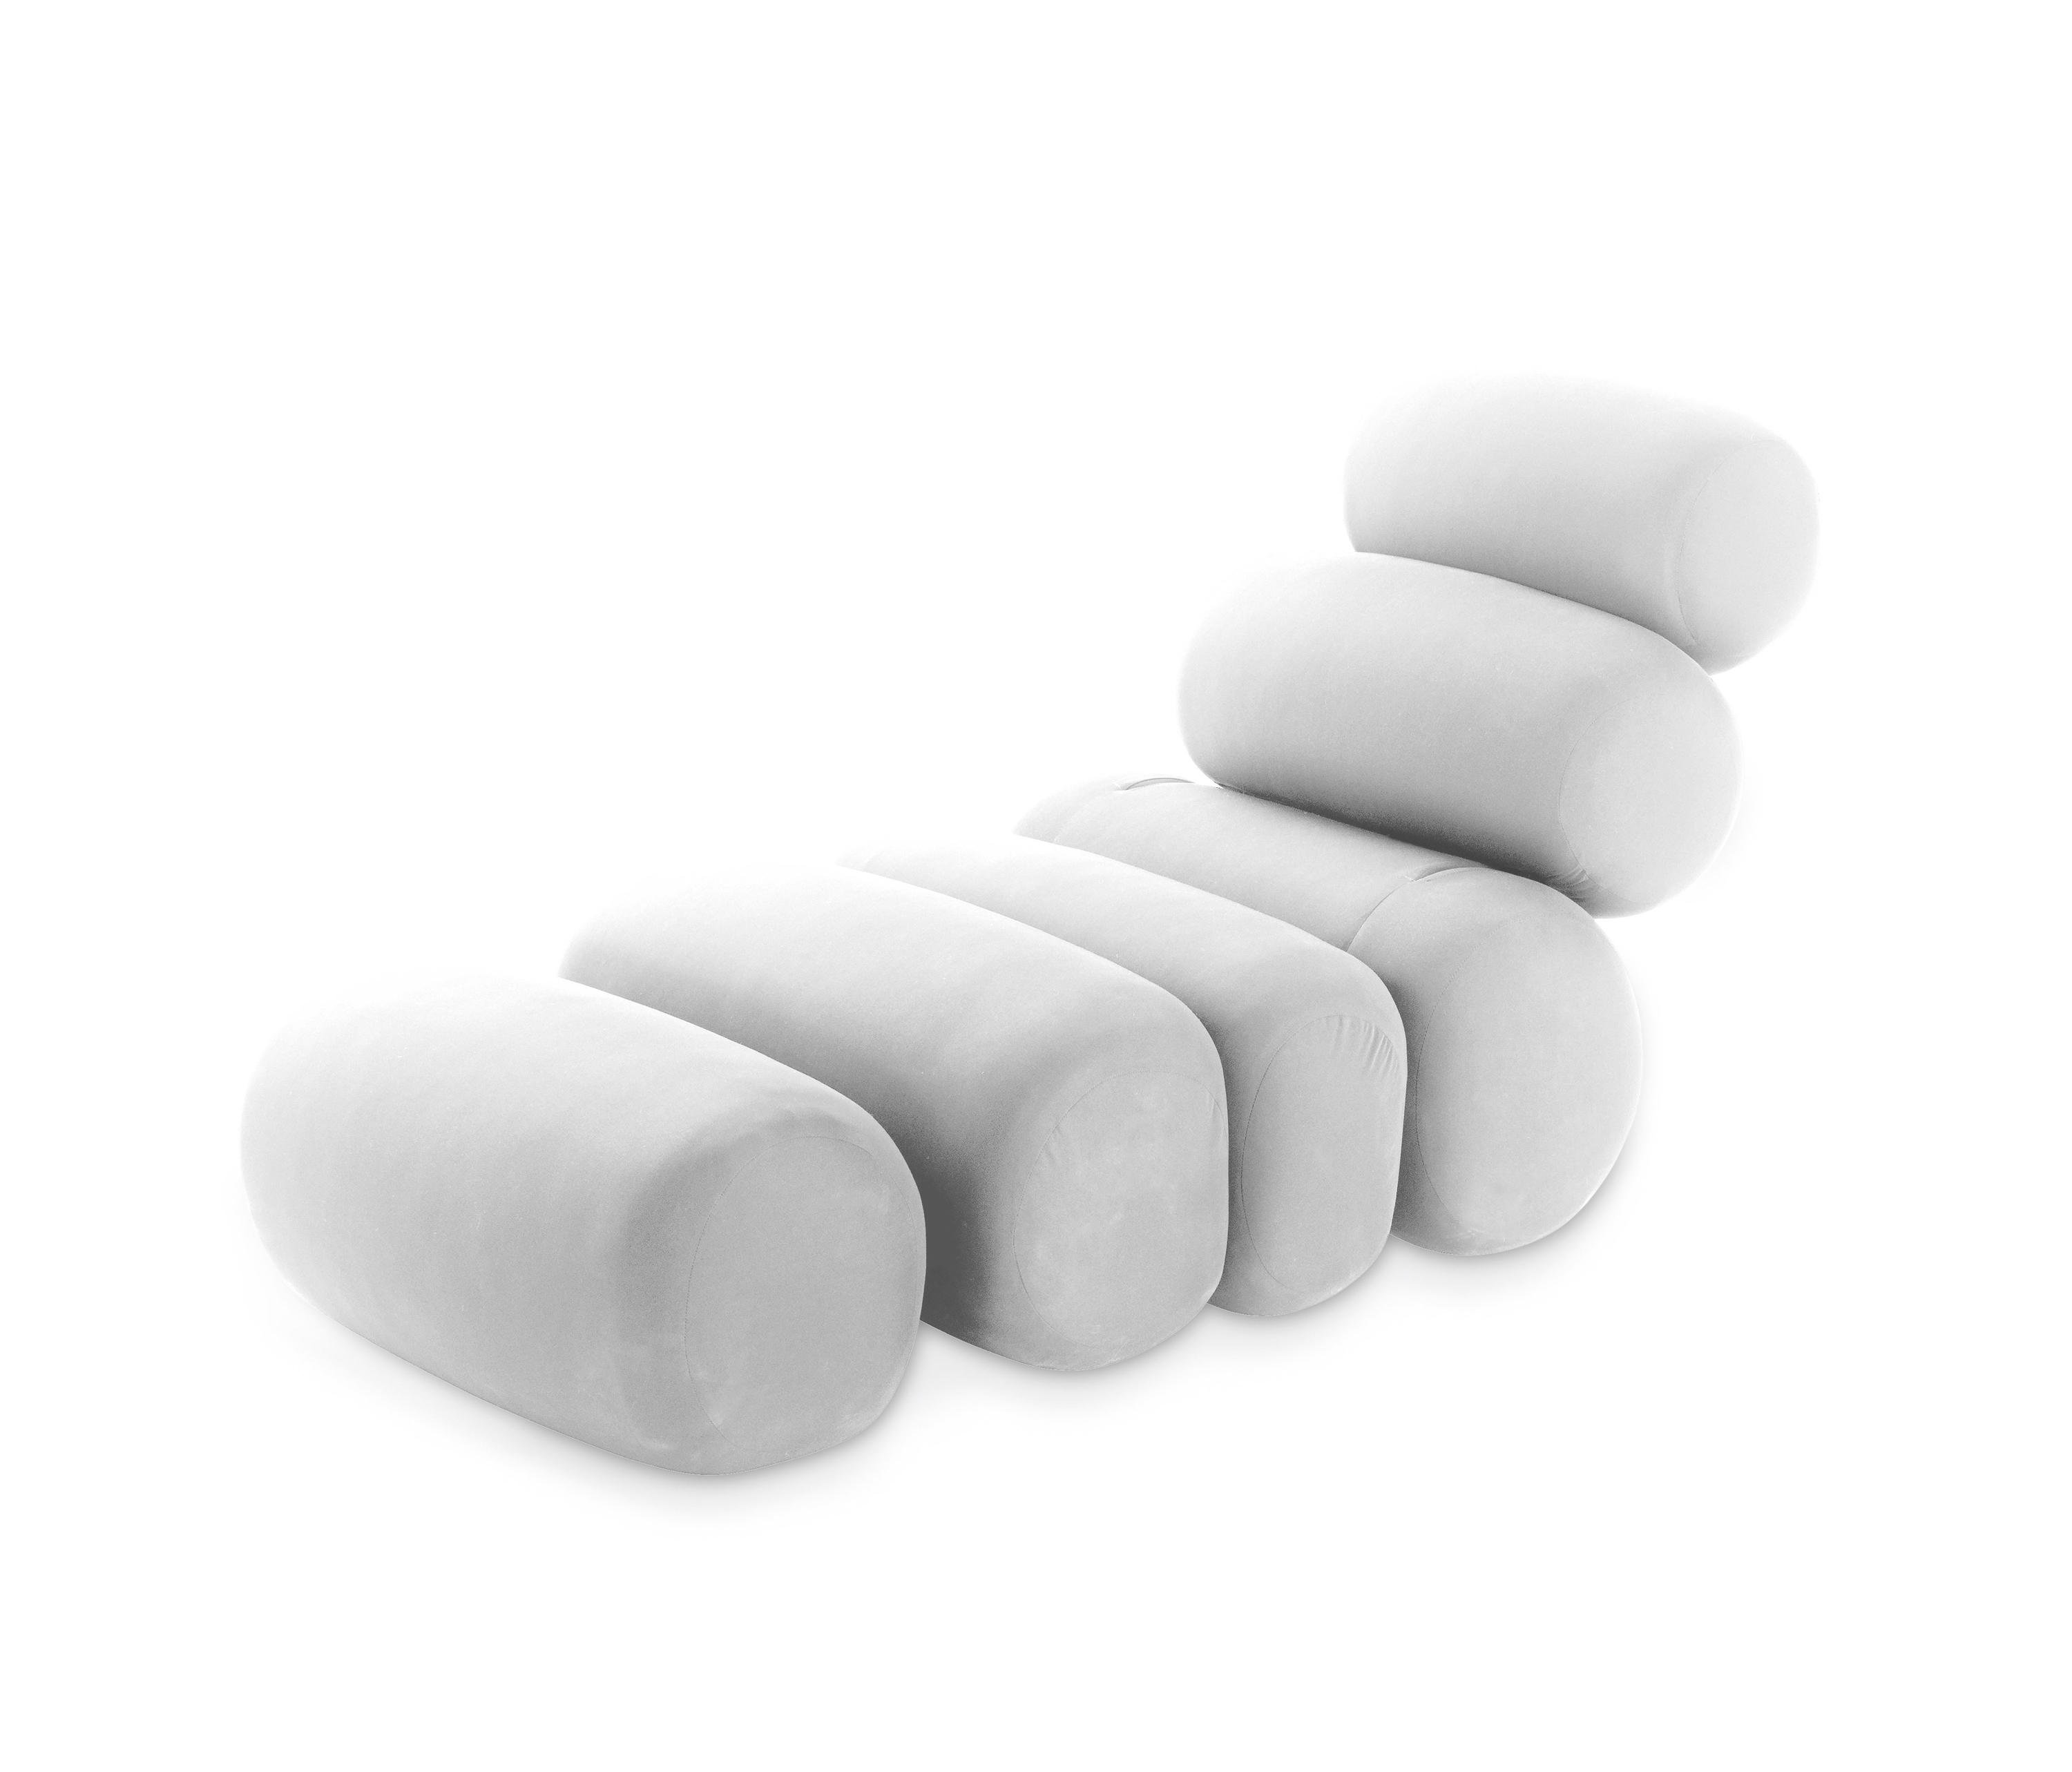 Bruco Presotto Chaise Longue White